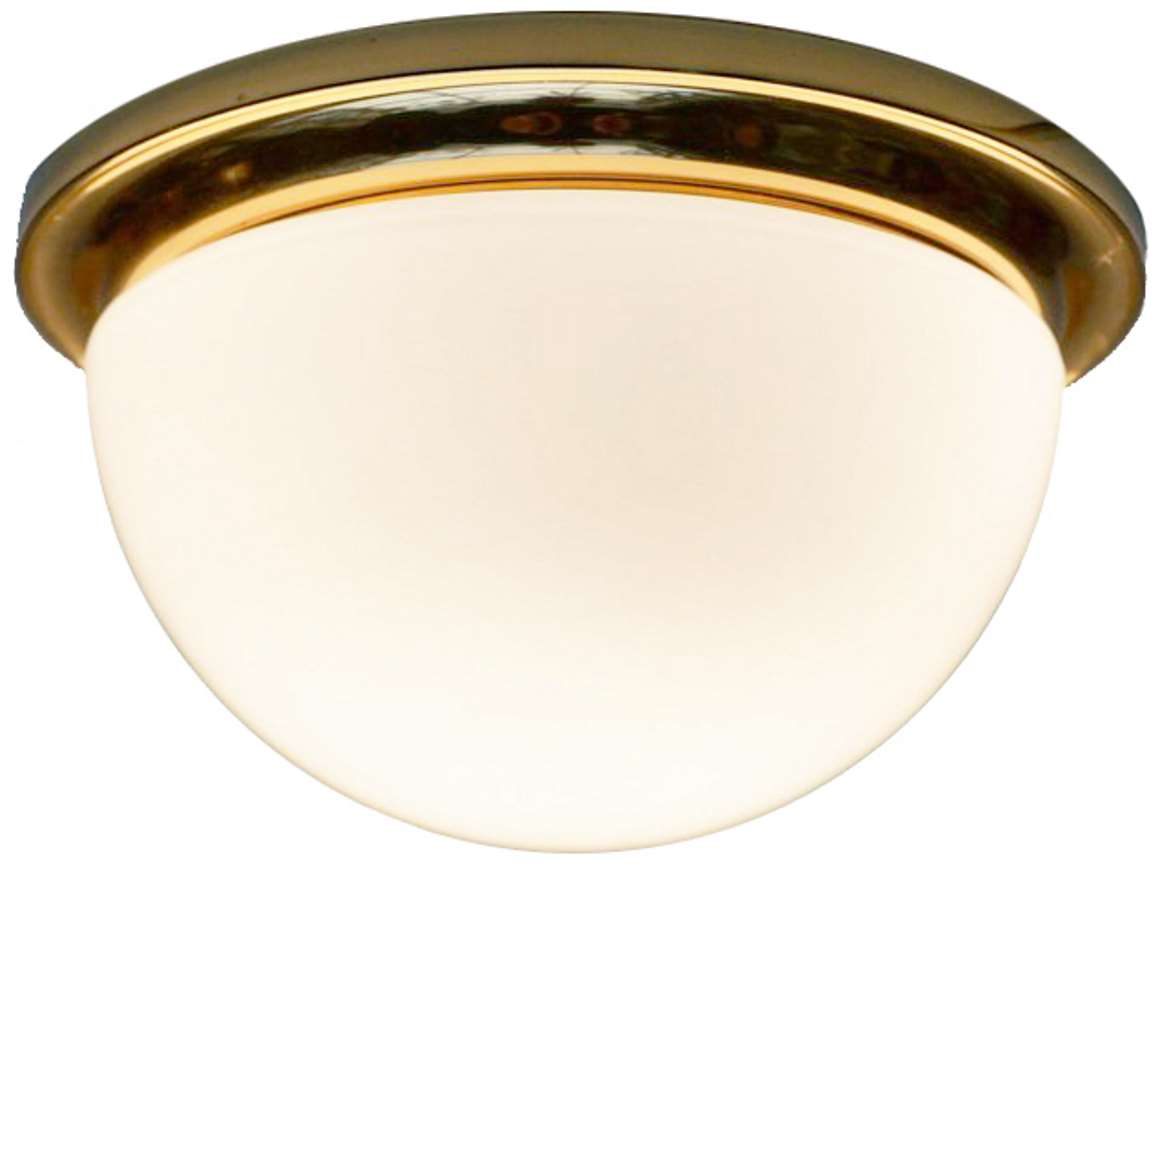 Glashütte Limburg Opaque Half Round Flush Mount